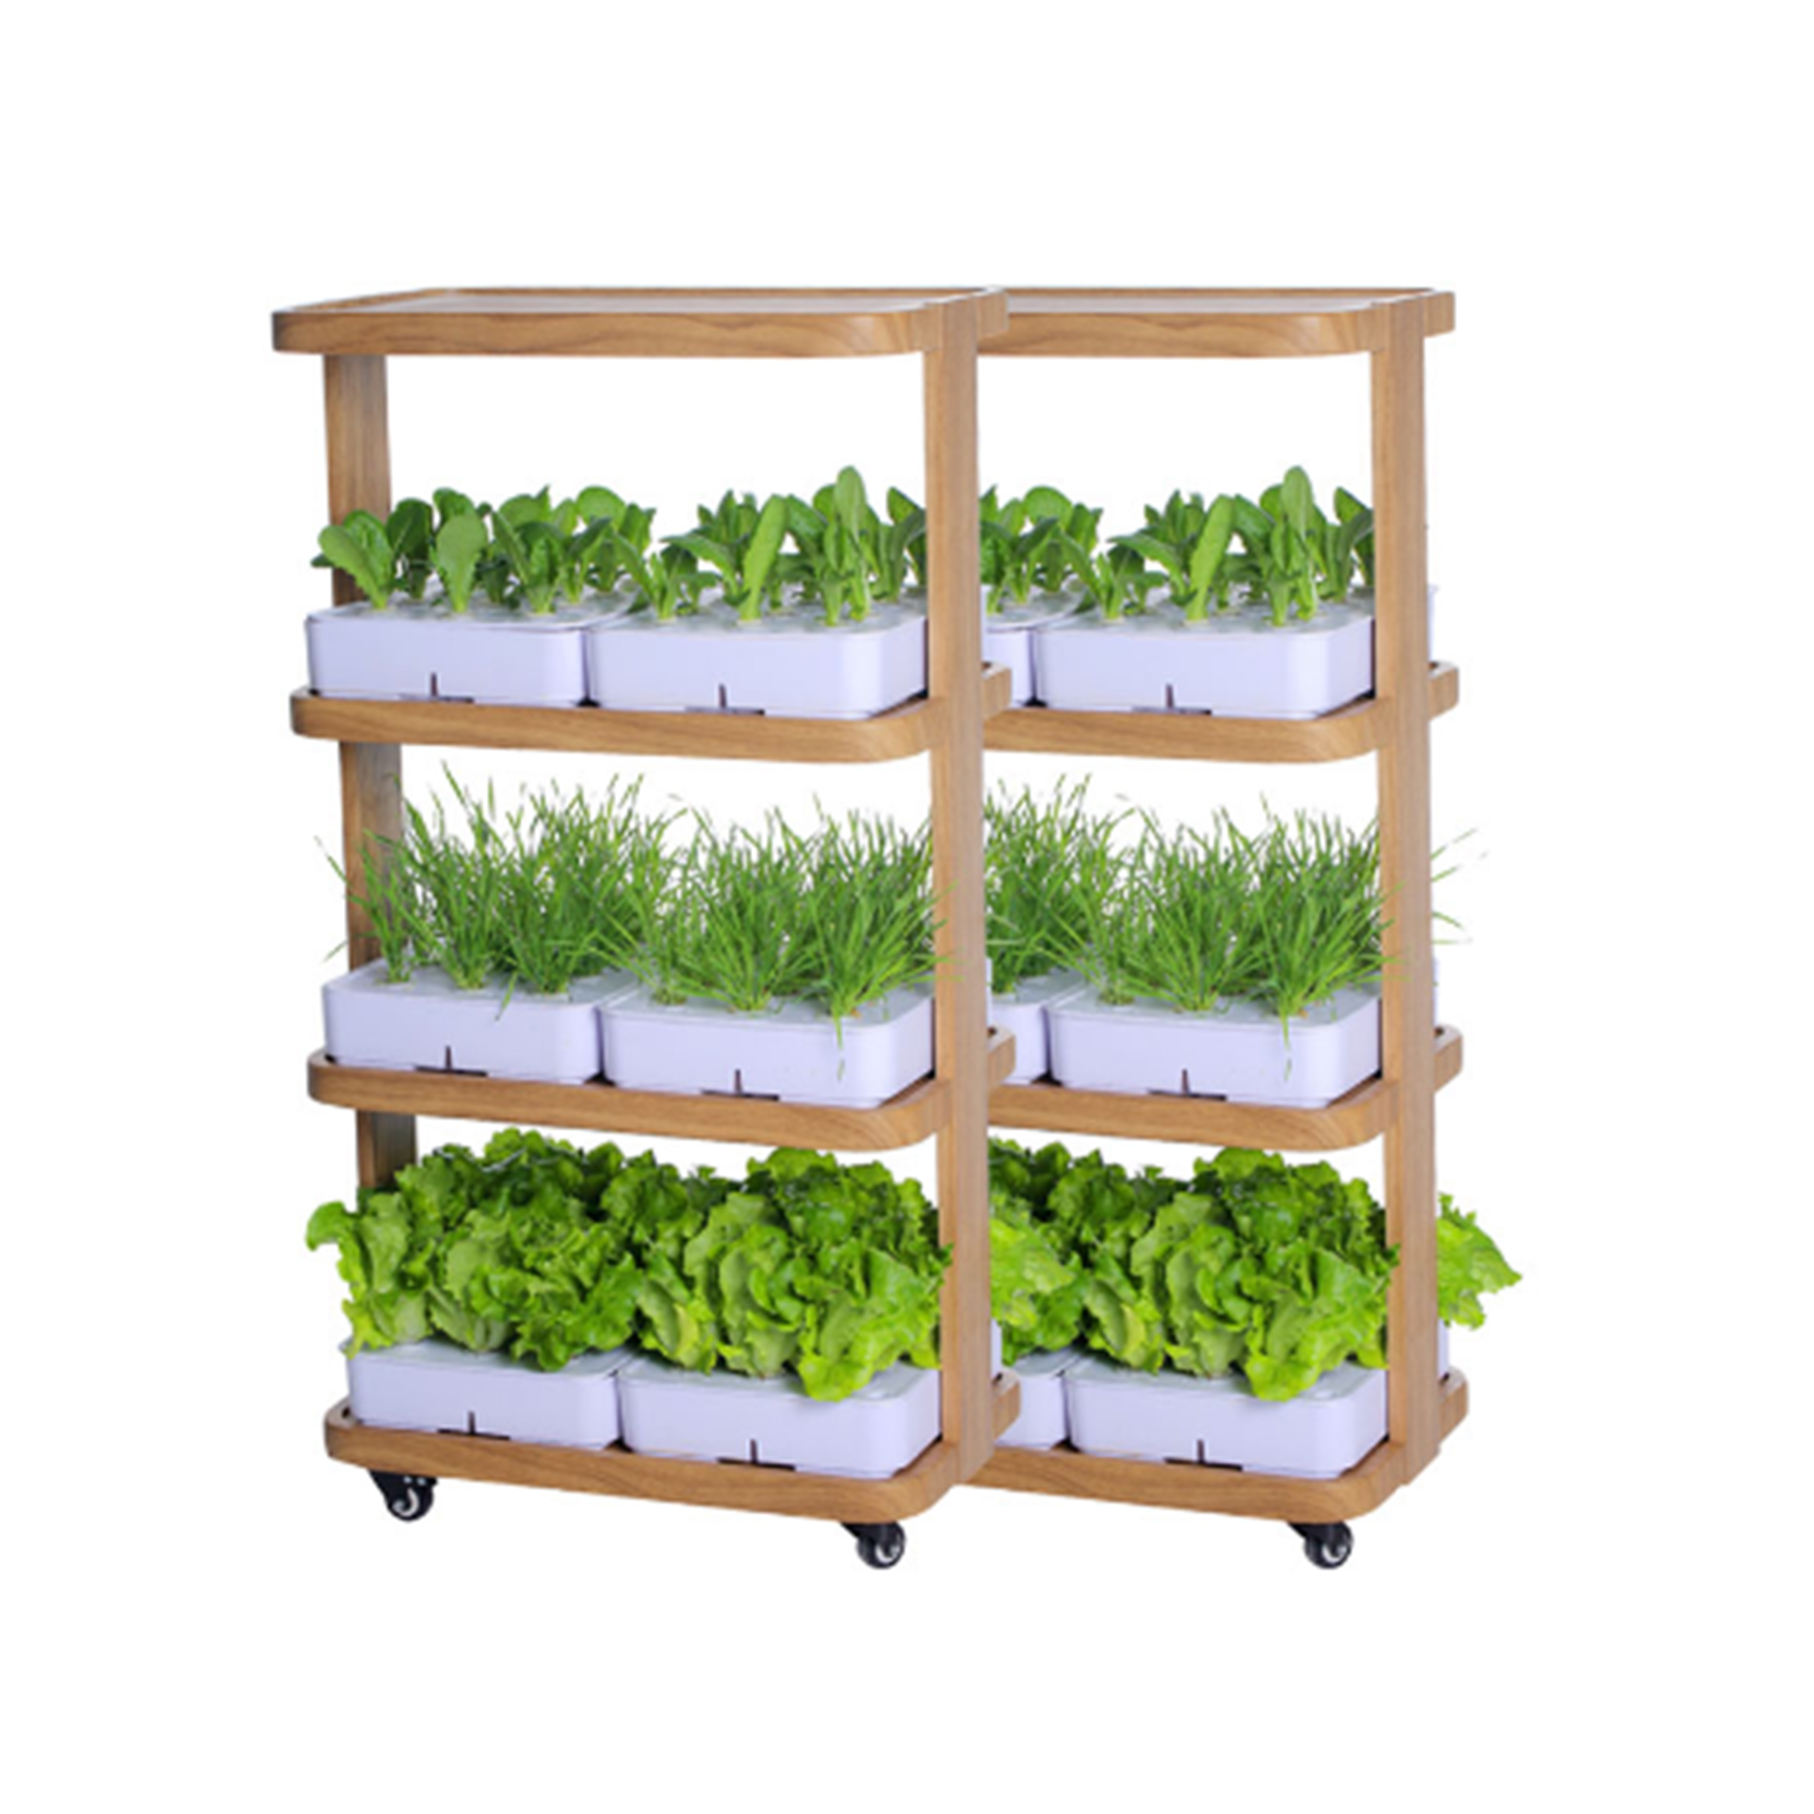 Shenzhen best seller oem hydroponic greenhouse grow kits the indoor gardener for home vegetable growth